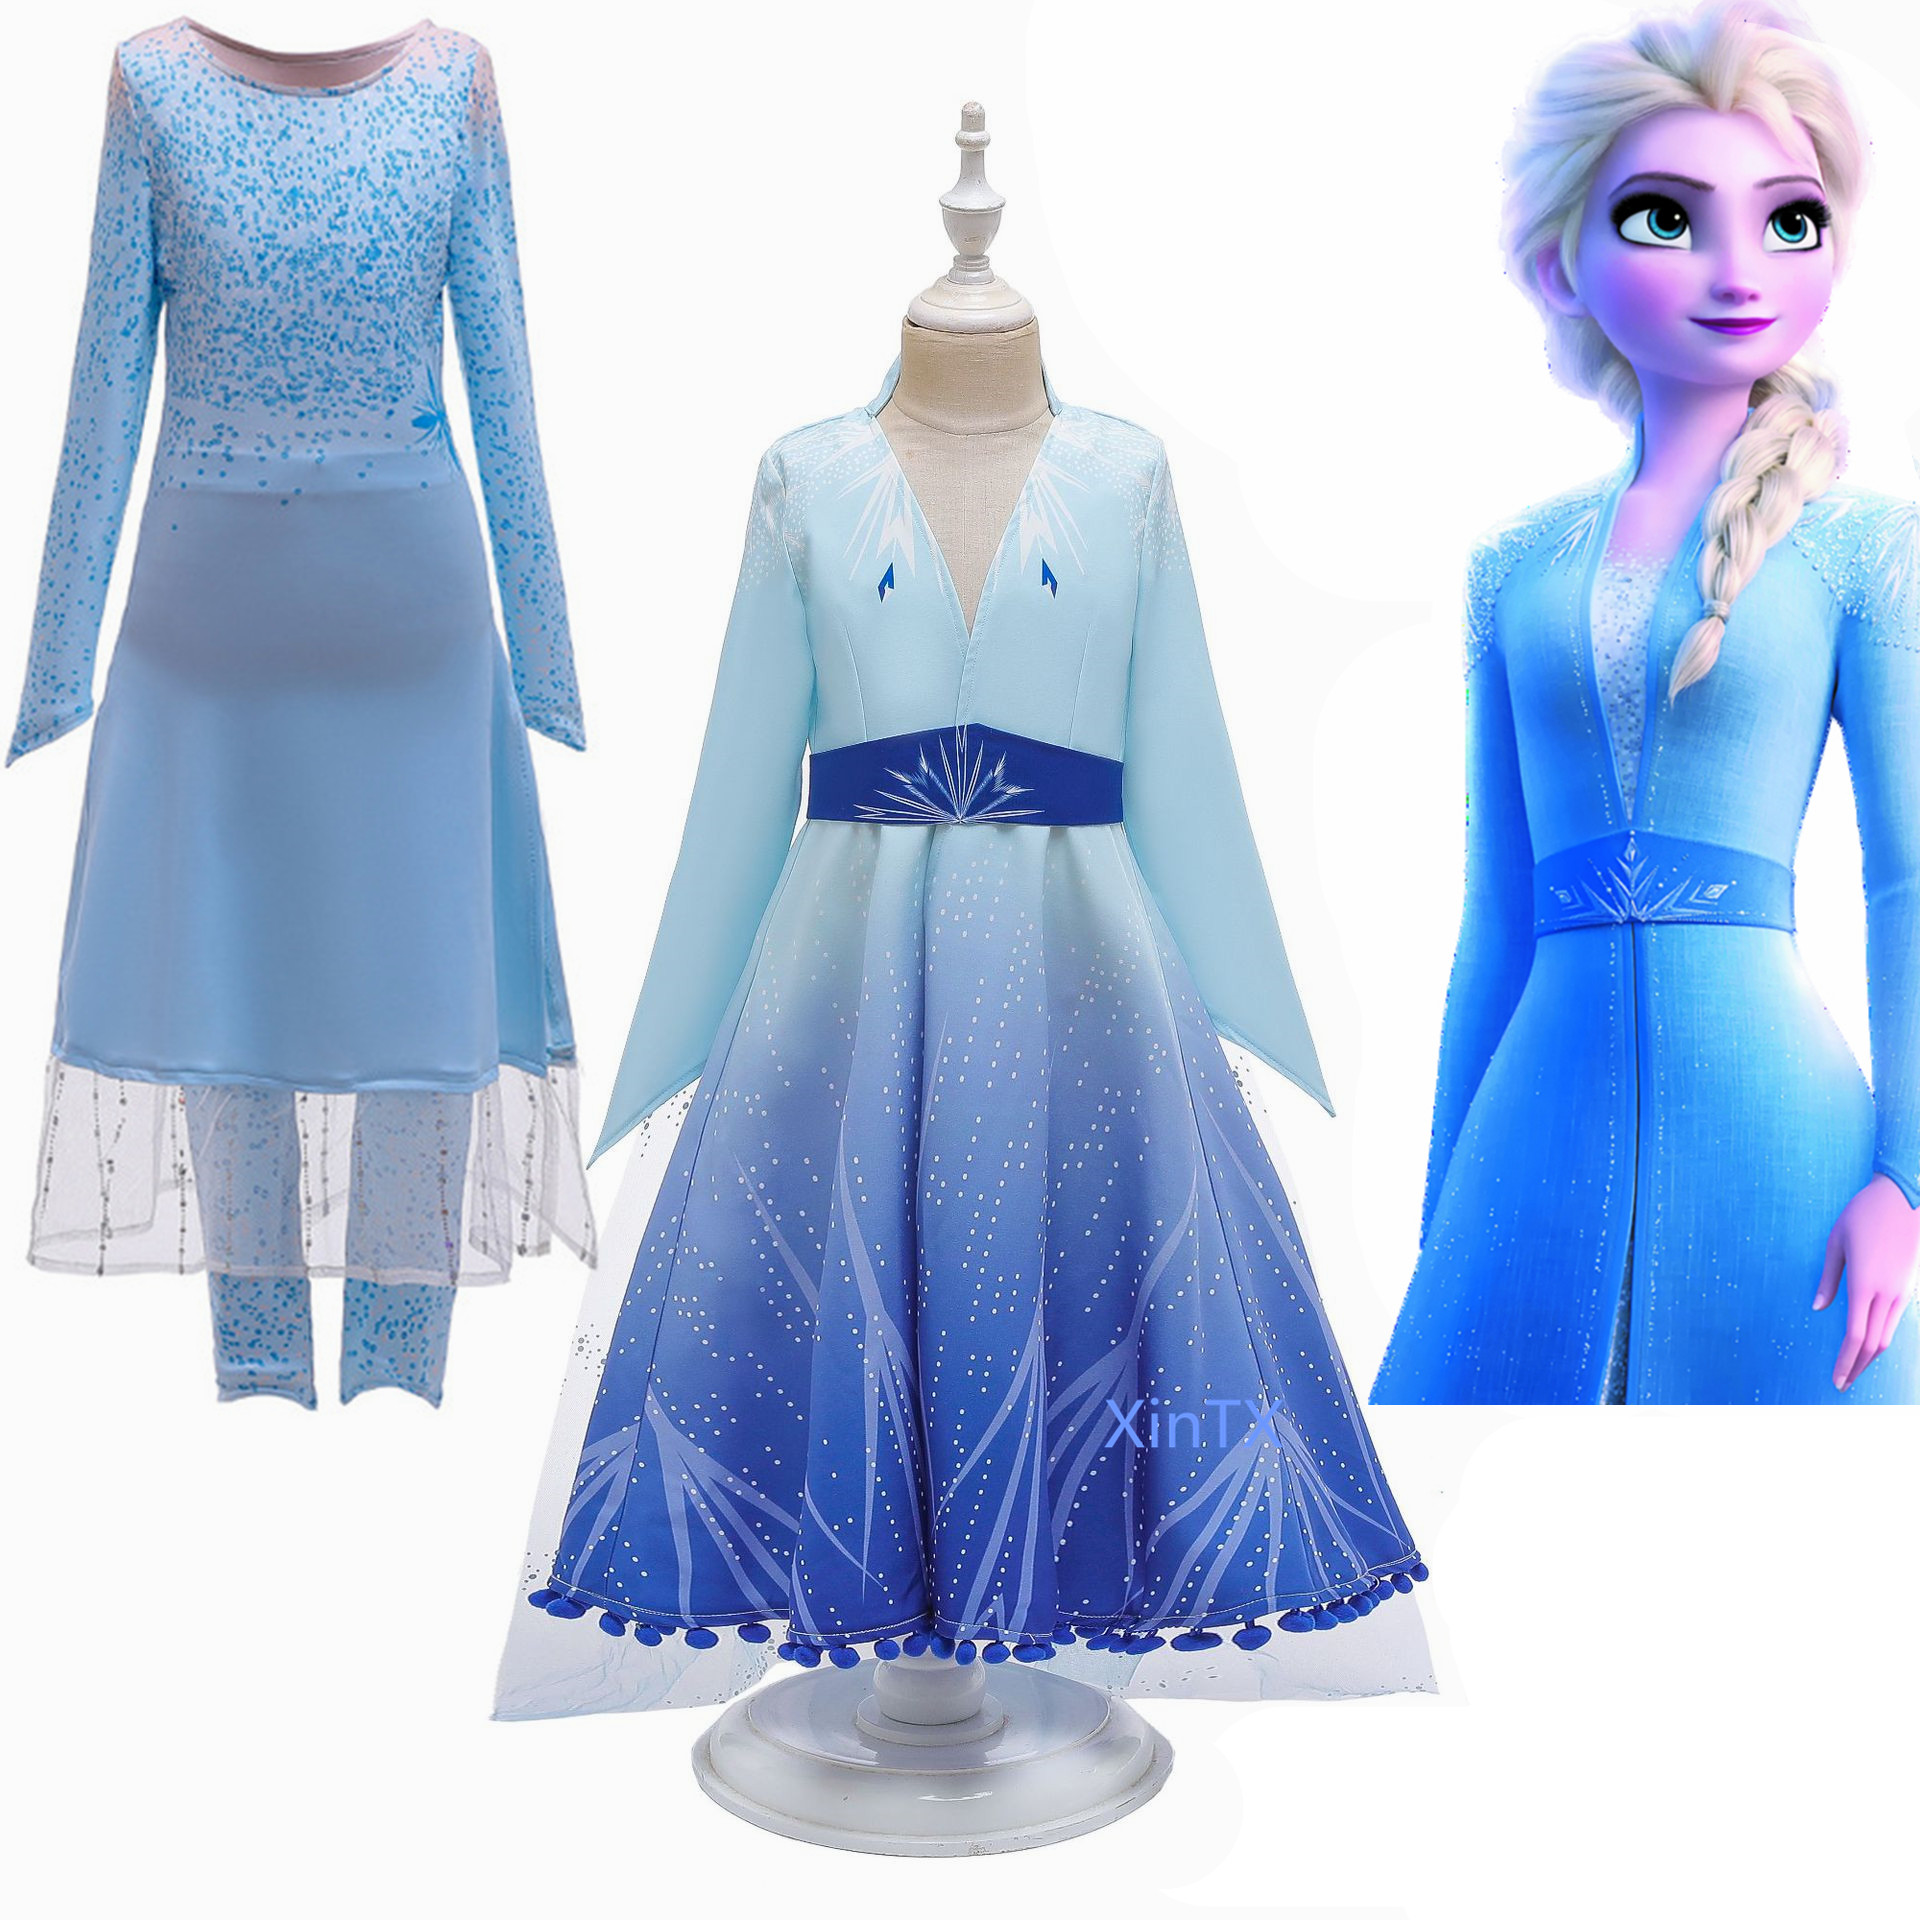 Elsa Dress 2 Kids Dresses For Girls Anna Costume Carnival Birthday Party Dress Toddler Girls Princess Dress Children Clothing